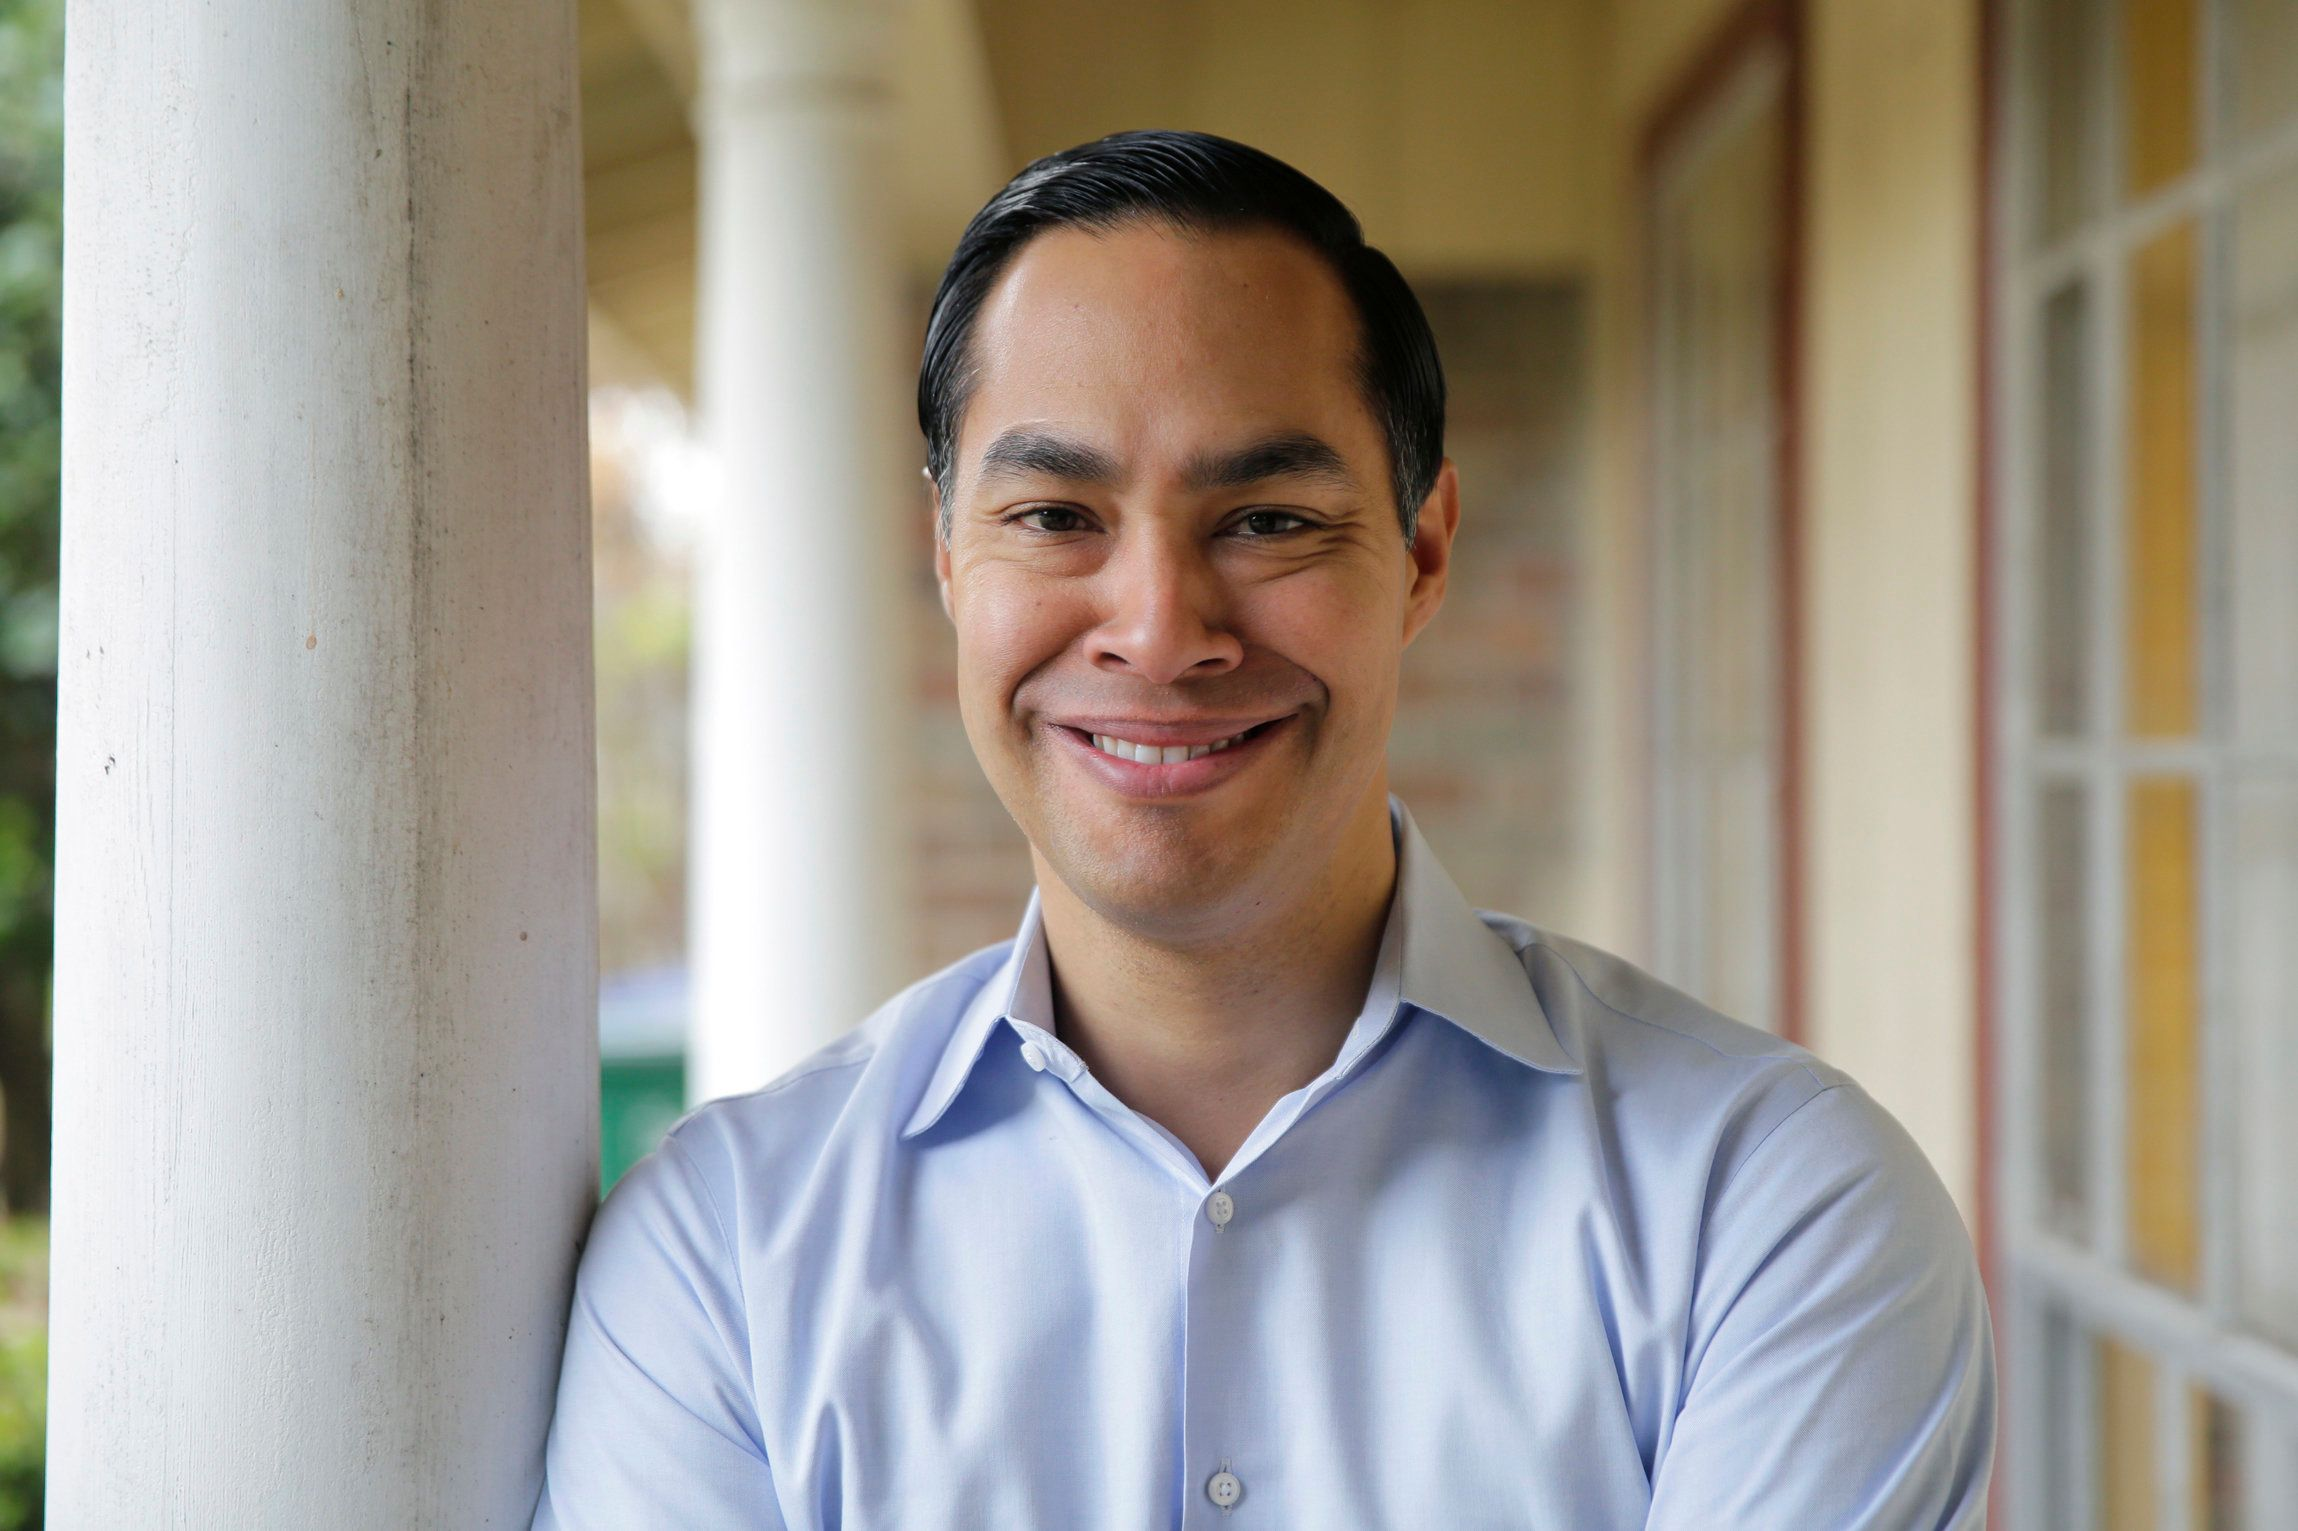 Democrat Julian Castro poses for a photo at his home in San Antonio, Tuesday, Dec. 11, 2018.  Castro says he is launching a presidential exploratory committee ahead of a likely White House run in 2020. Castro was the nation's housing secretary until 2016 and spent five years as mayor of San Antonio. (AP Photo/Eric Gay)